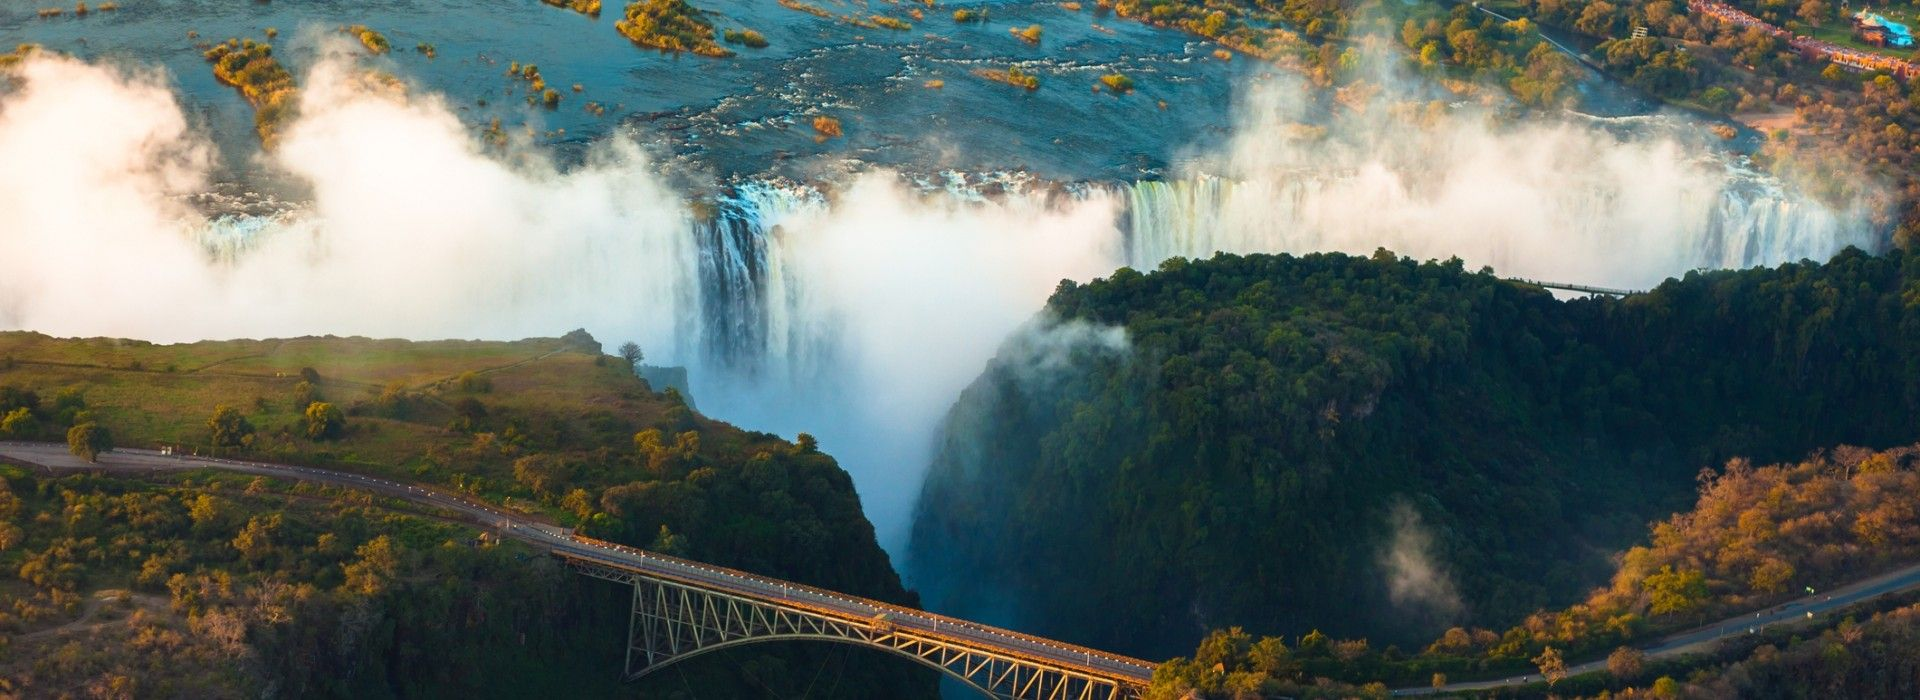 National parks Tours in Zambia